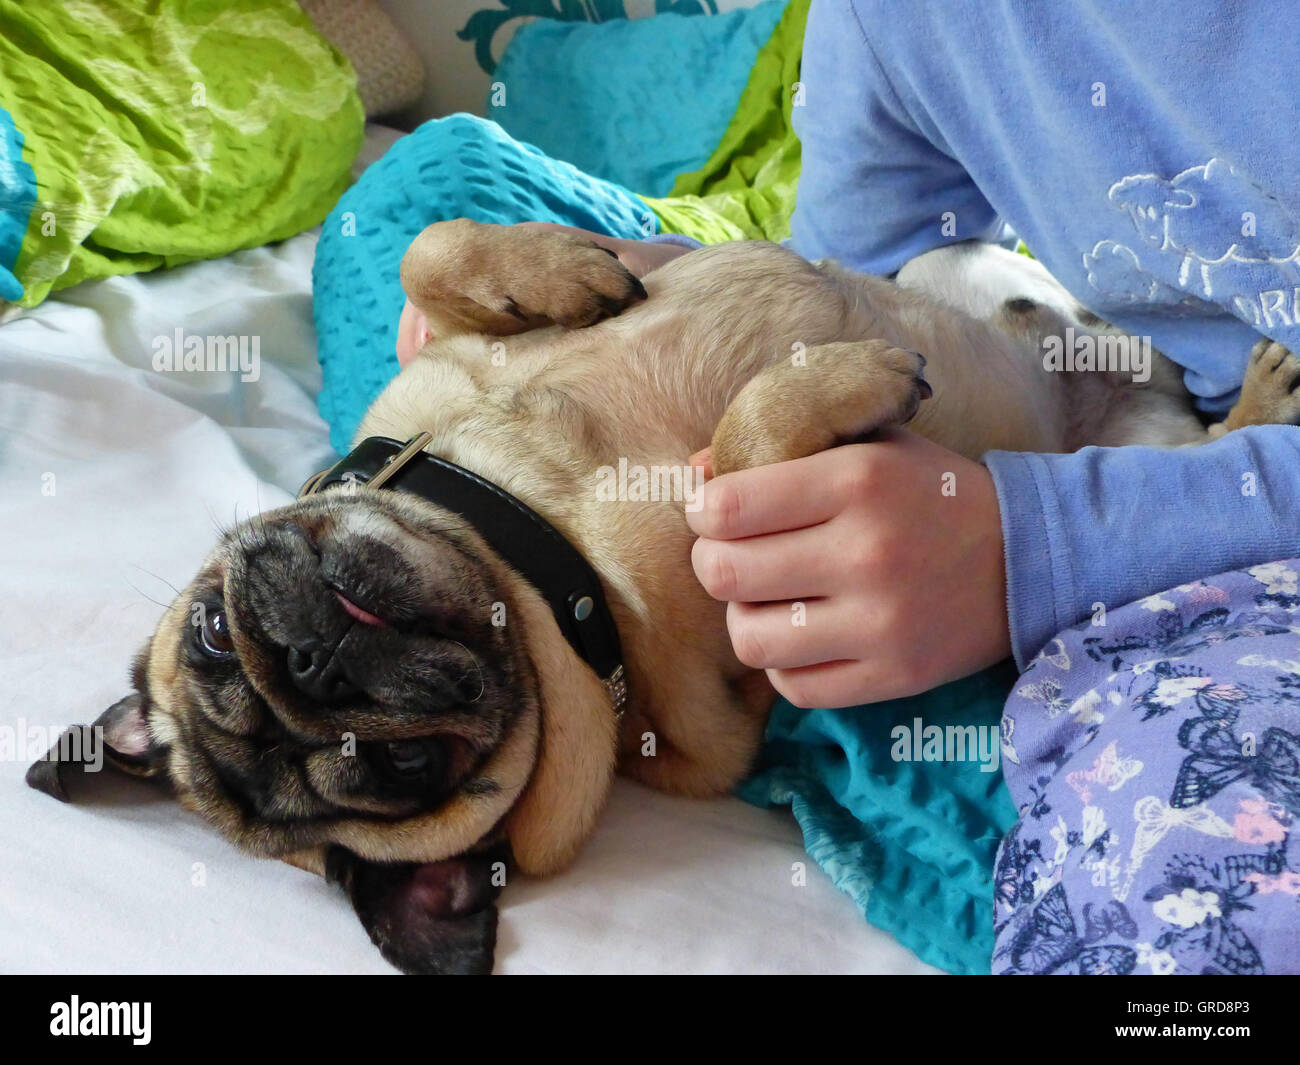 Child Playing In Bed With The Family Dog - Stock Image